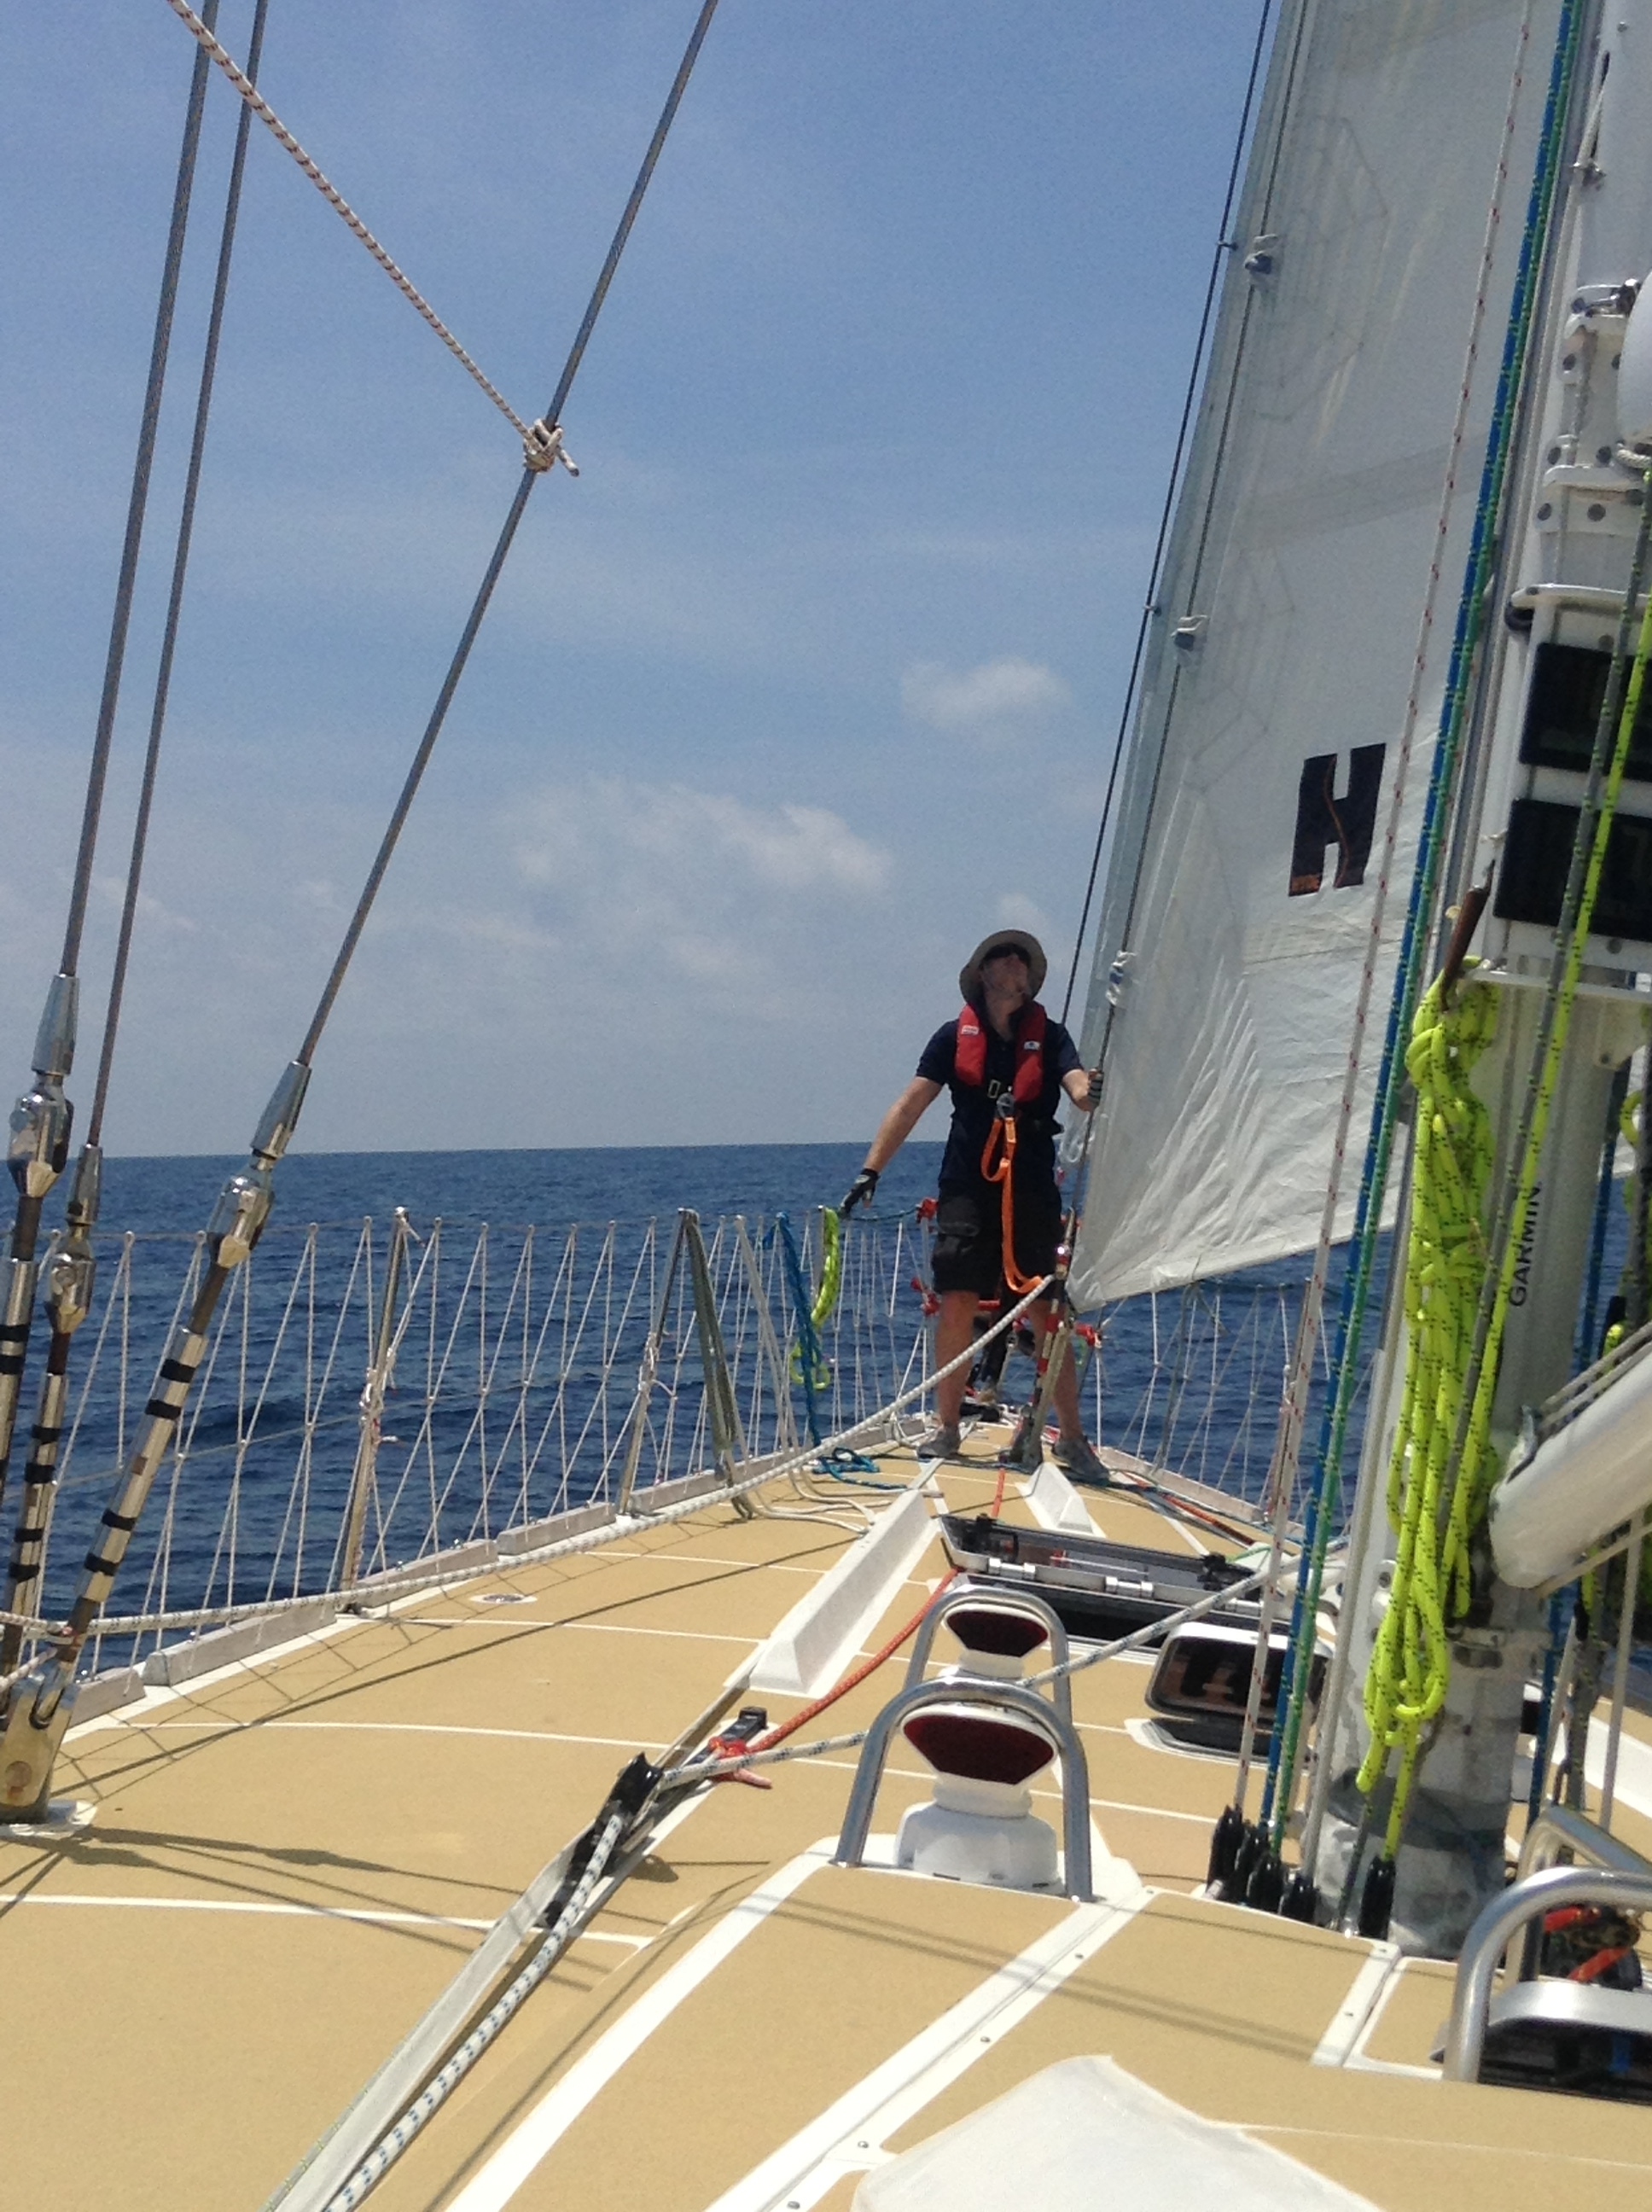 John checking sail trim